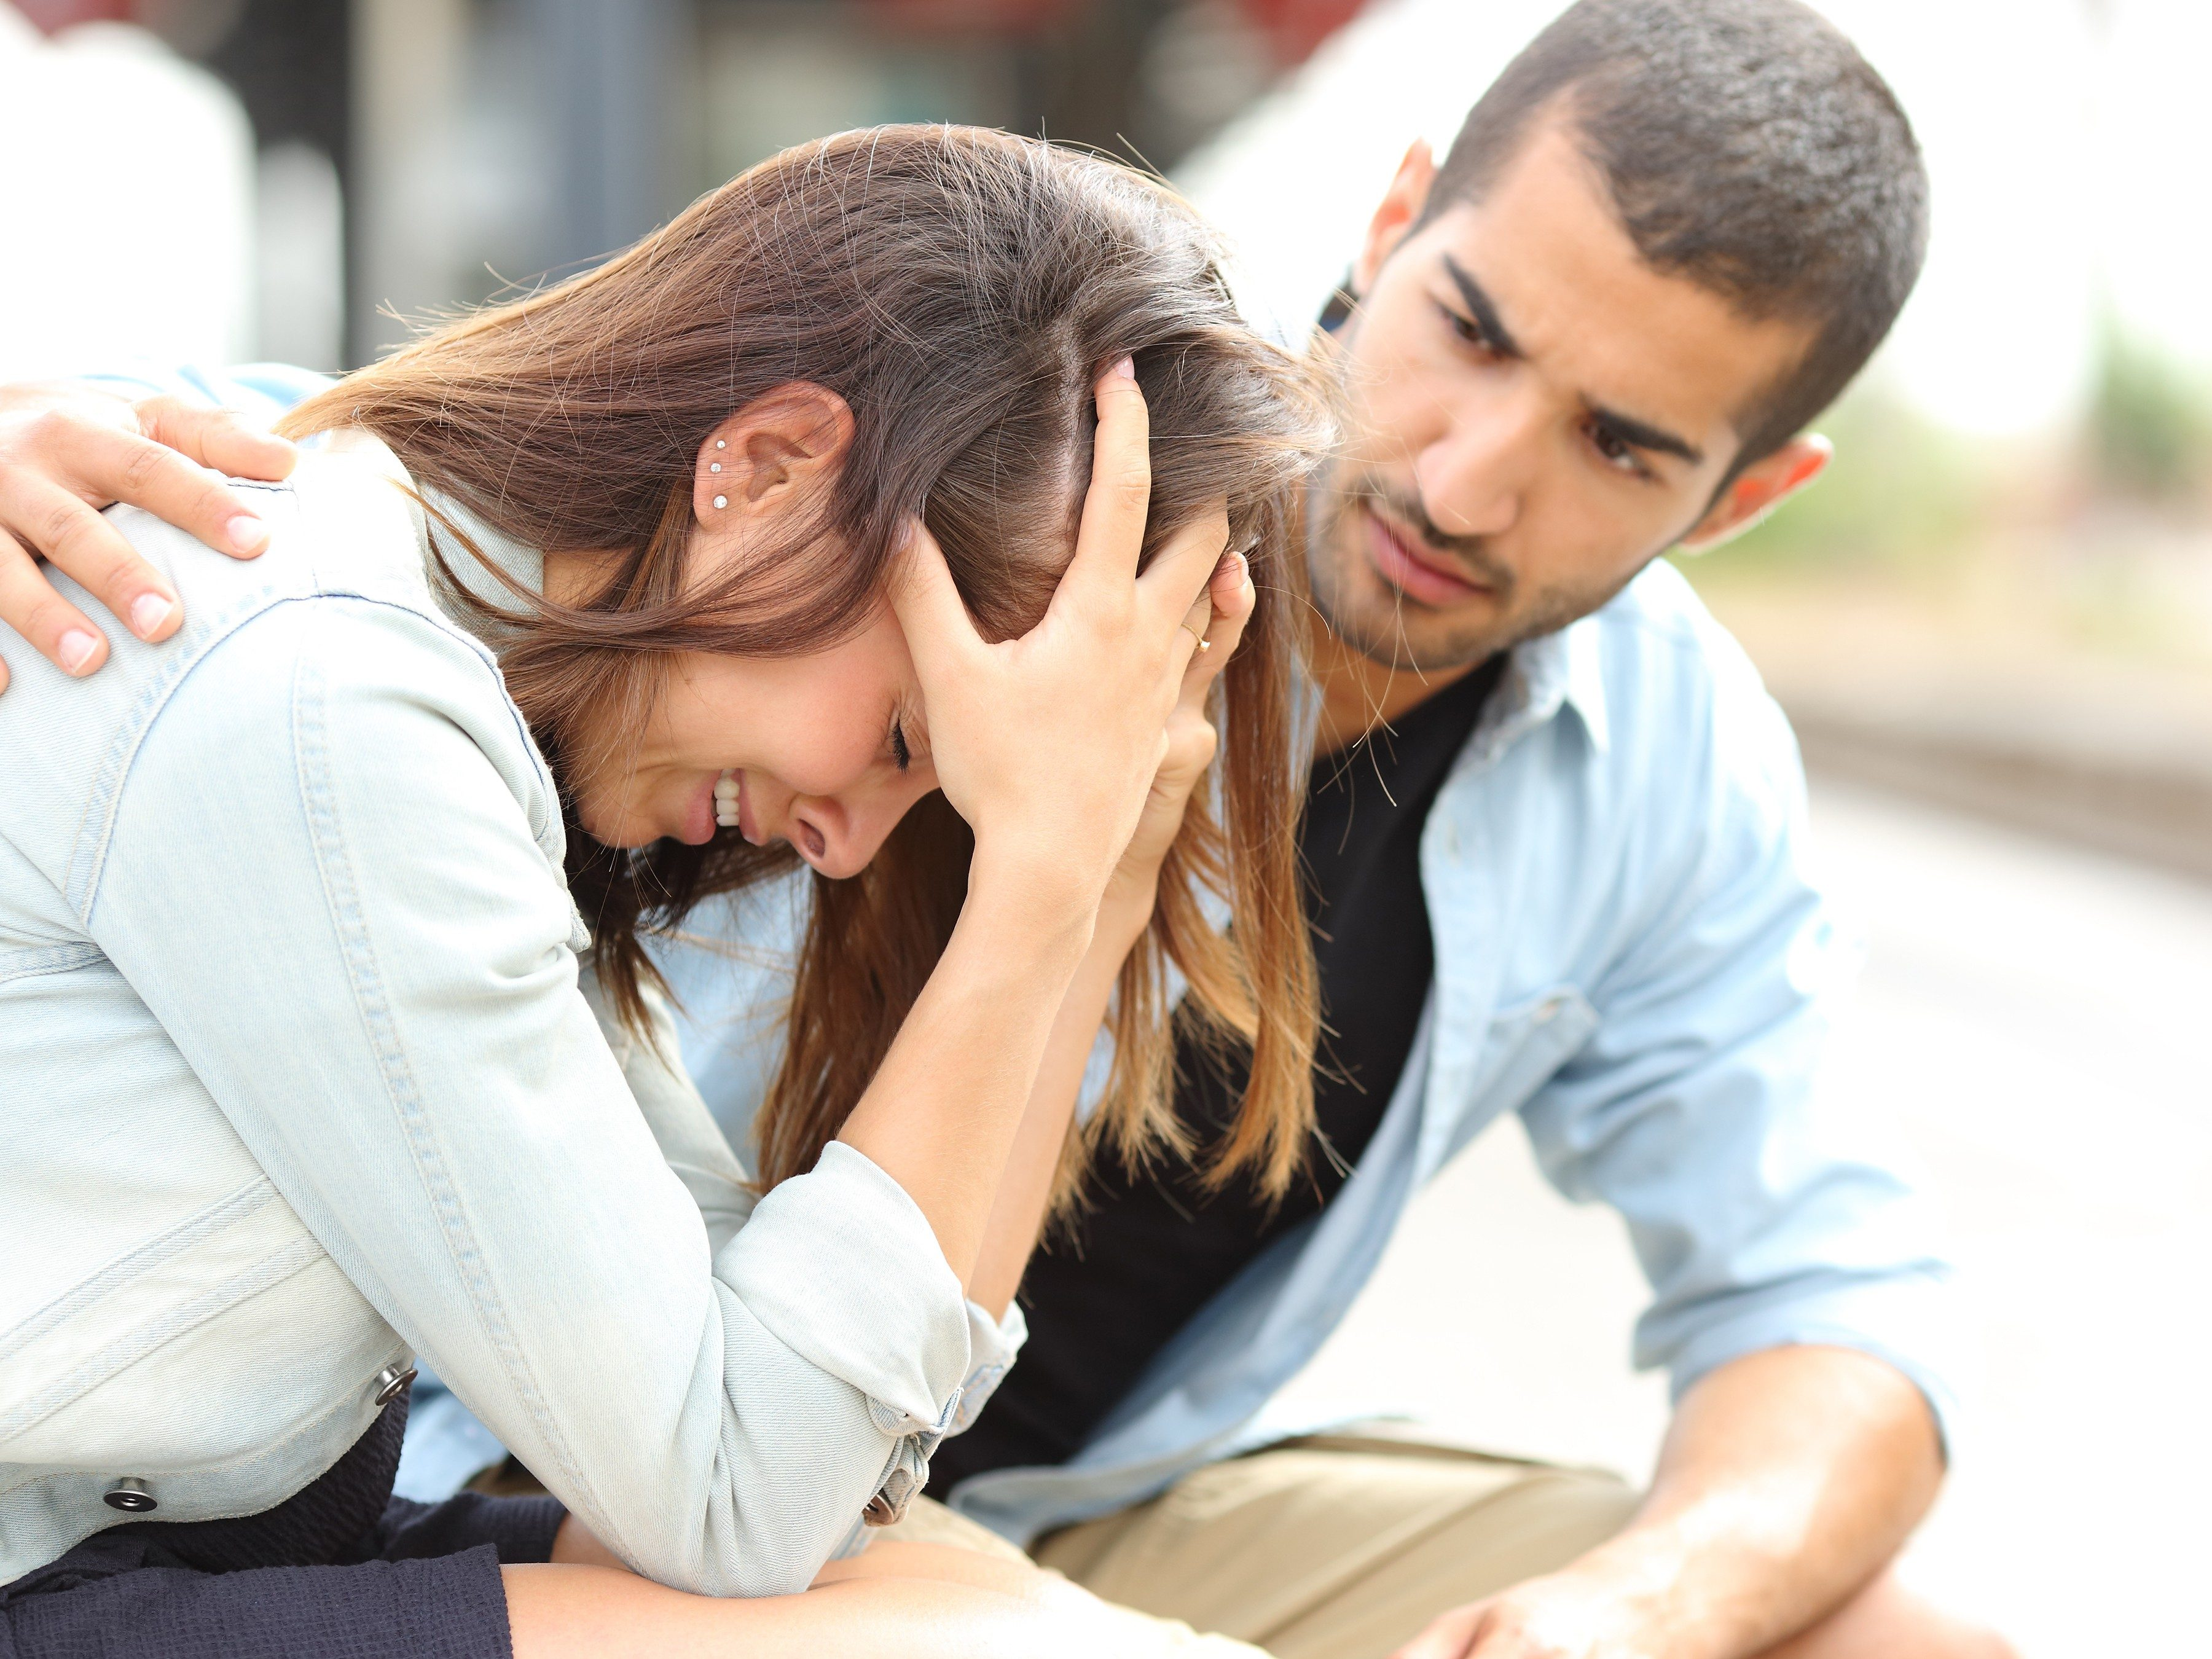 8. Stress is especially contagious if you love the person.